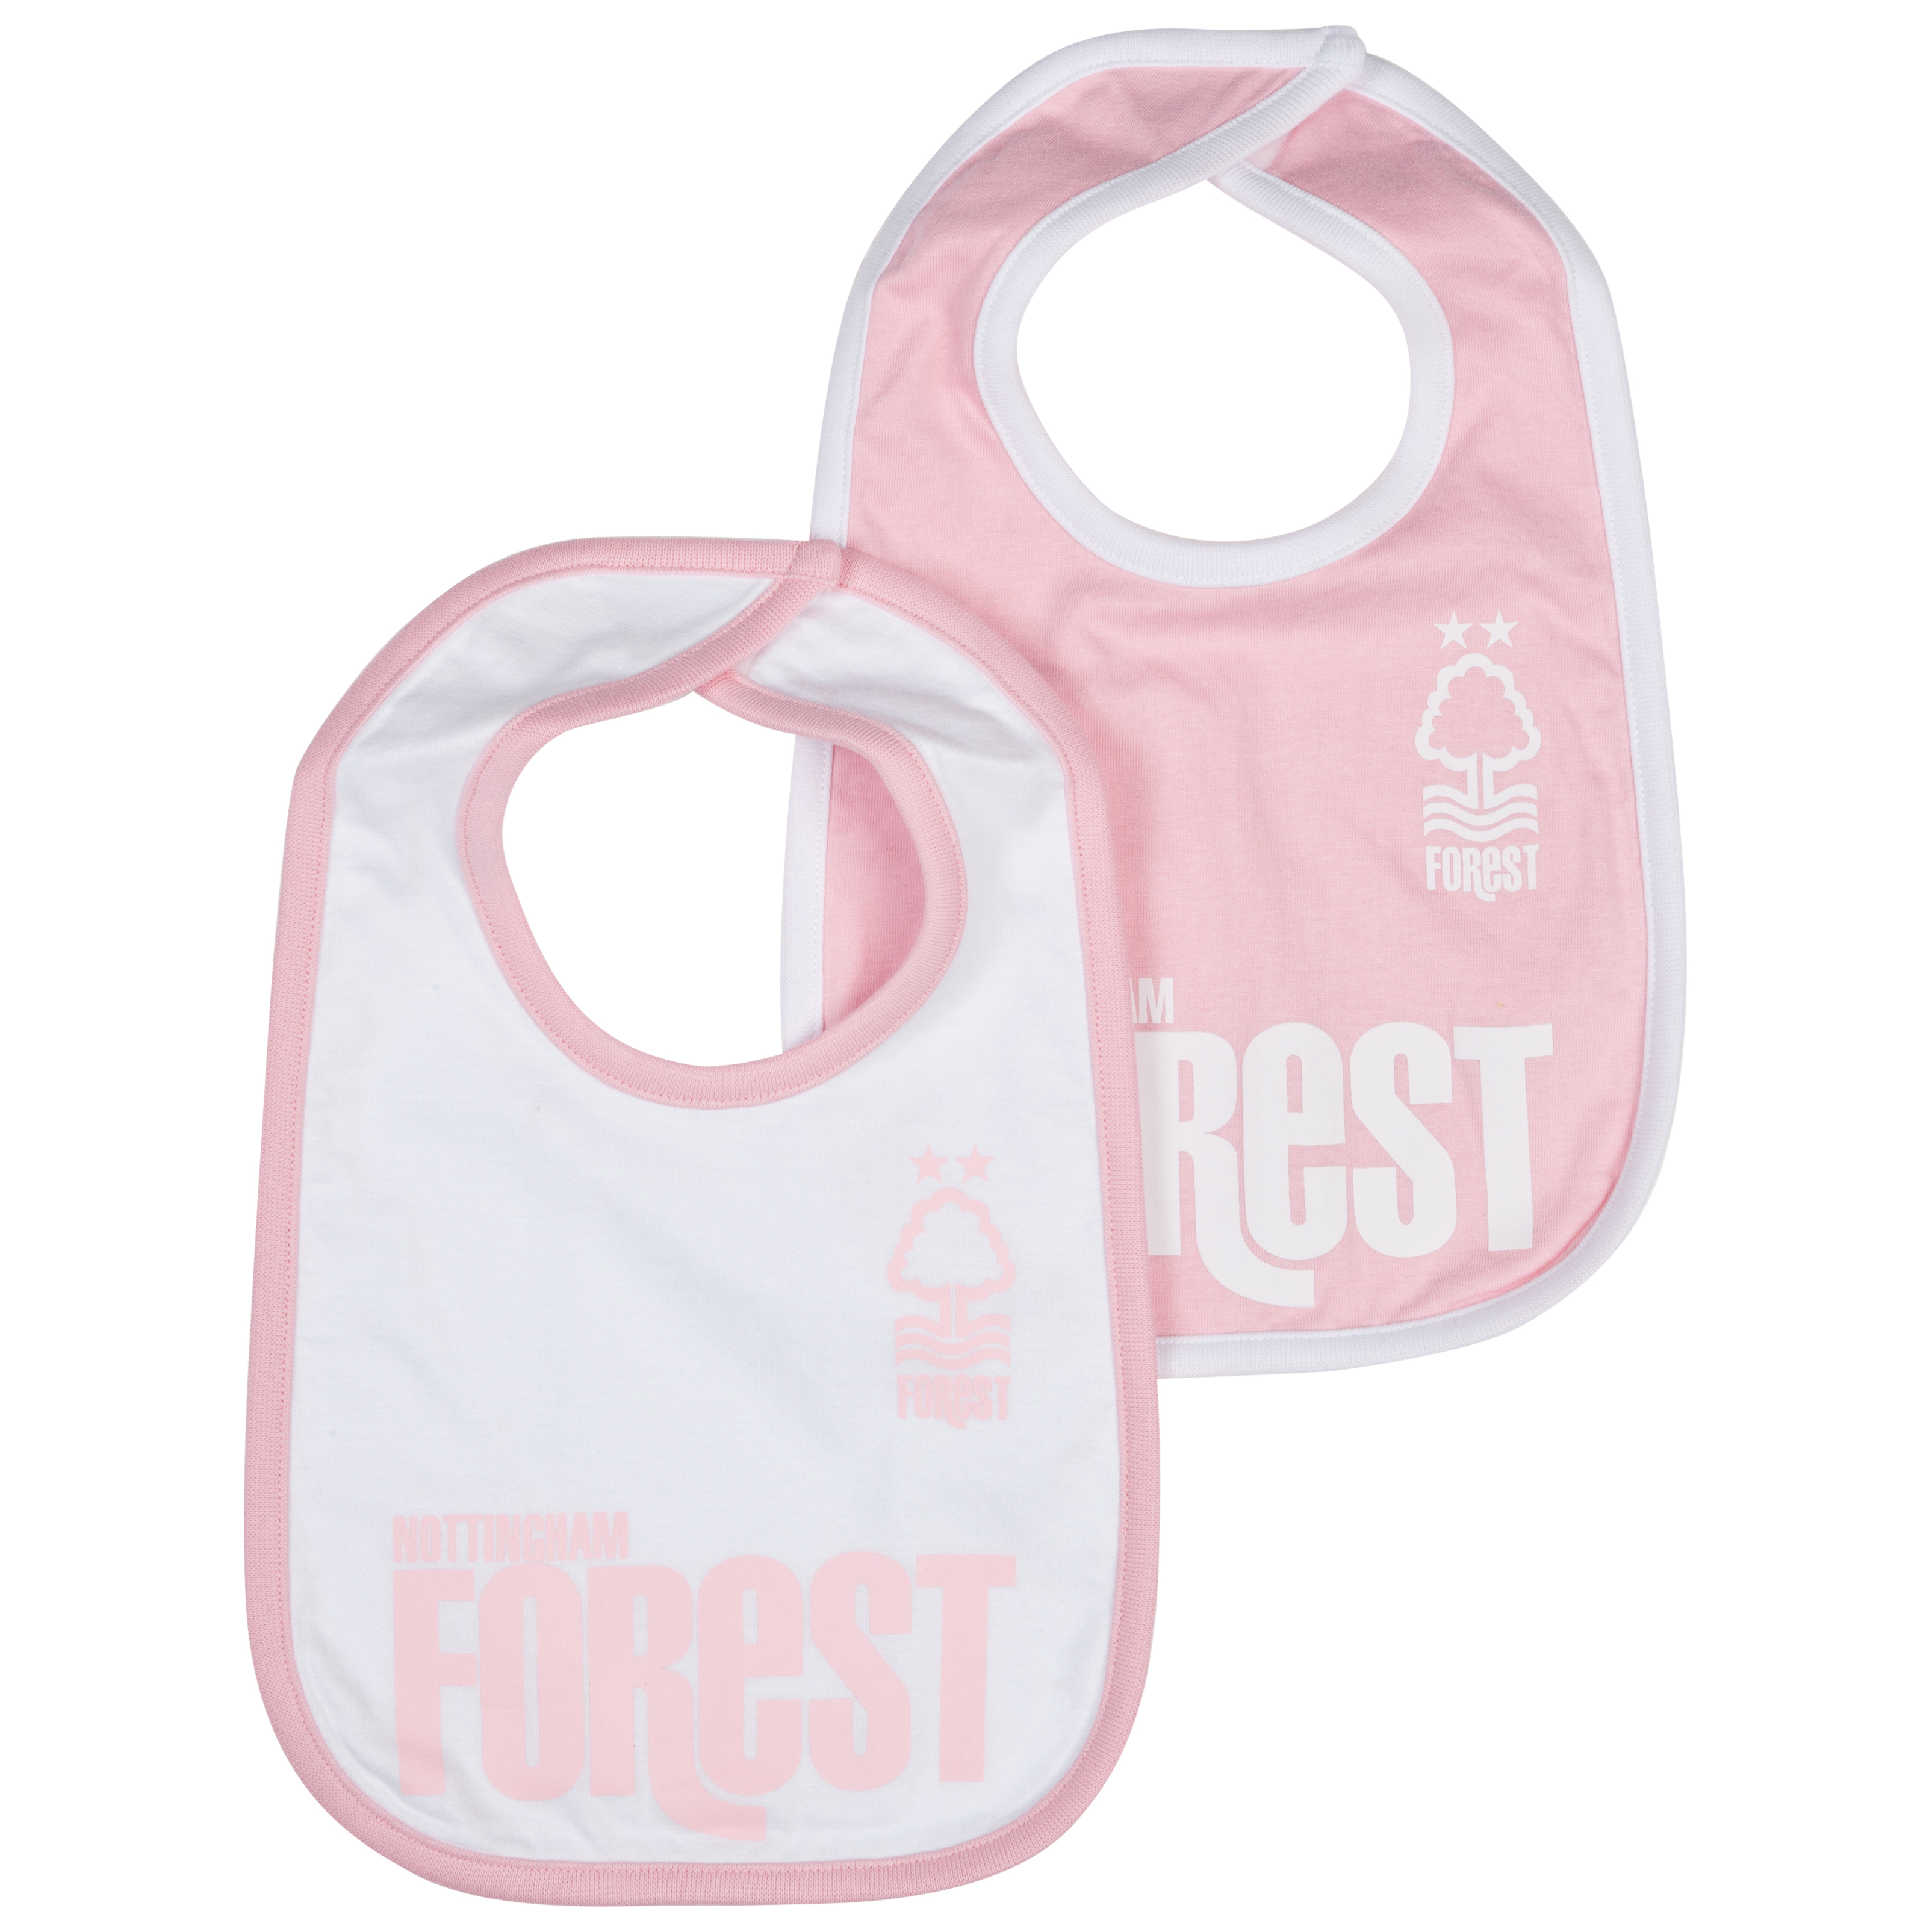 Nottingham Forest Pack of 2 Kit Bibs - Pink/White - Baby